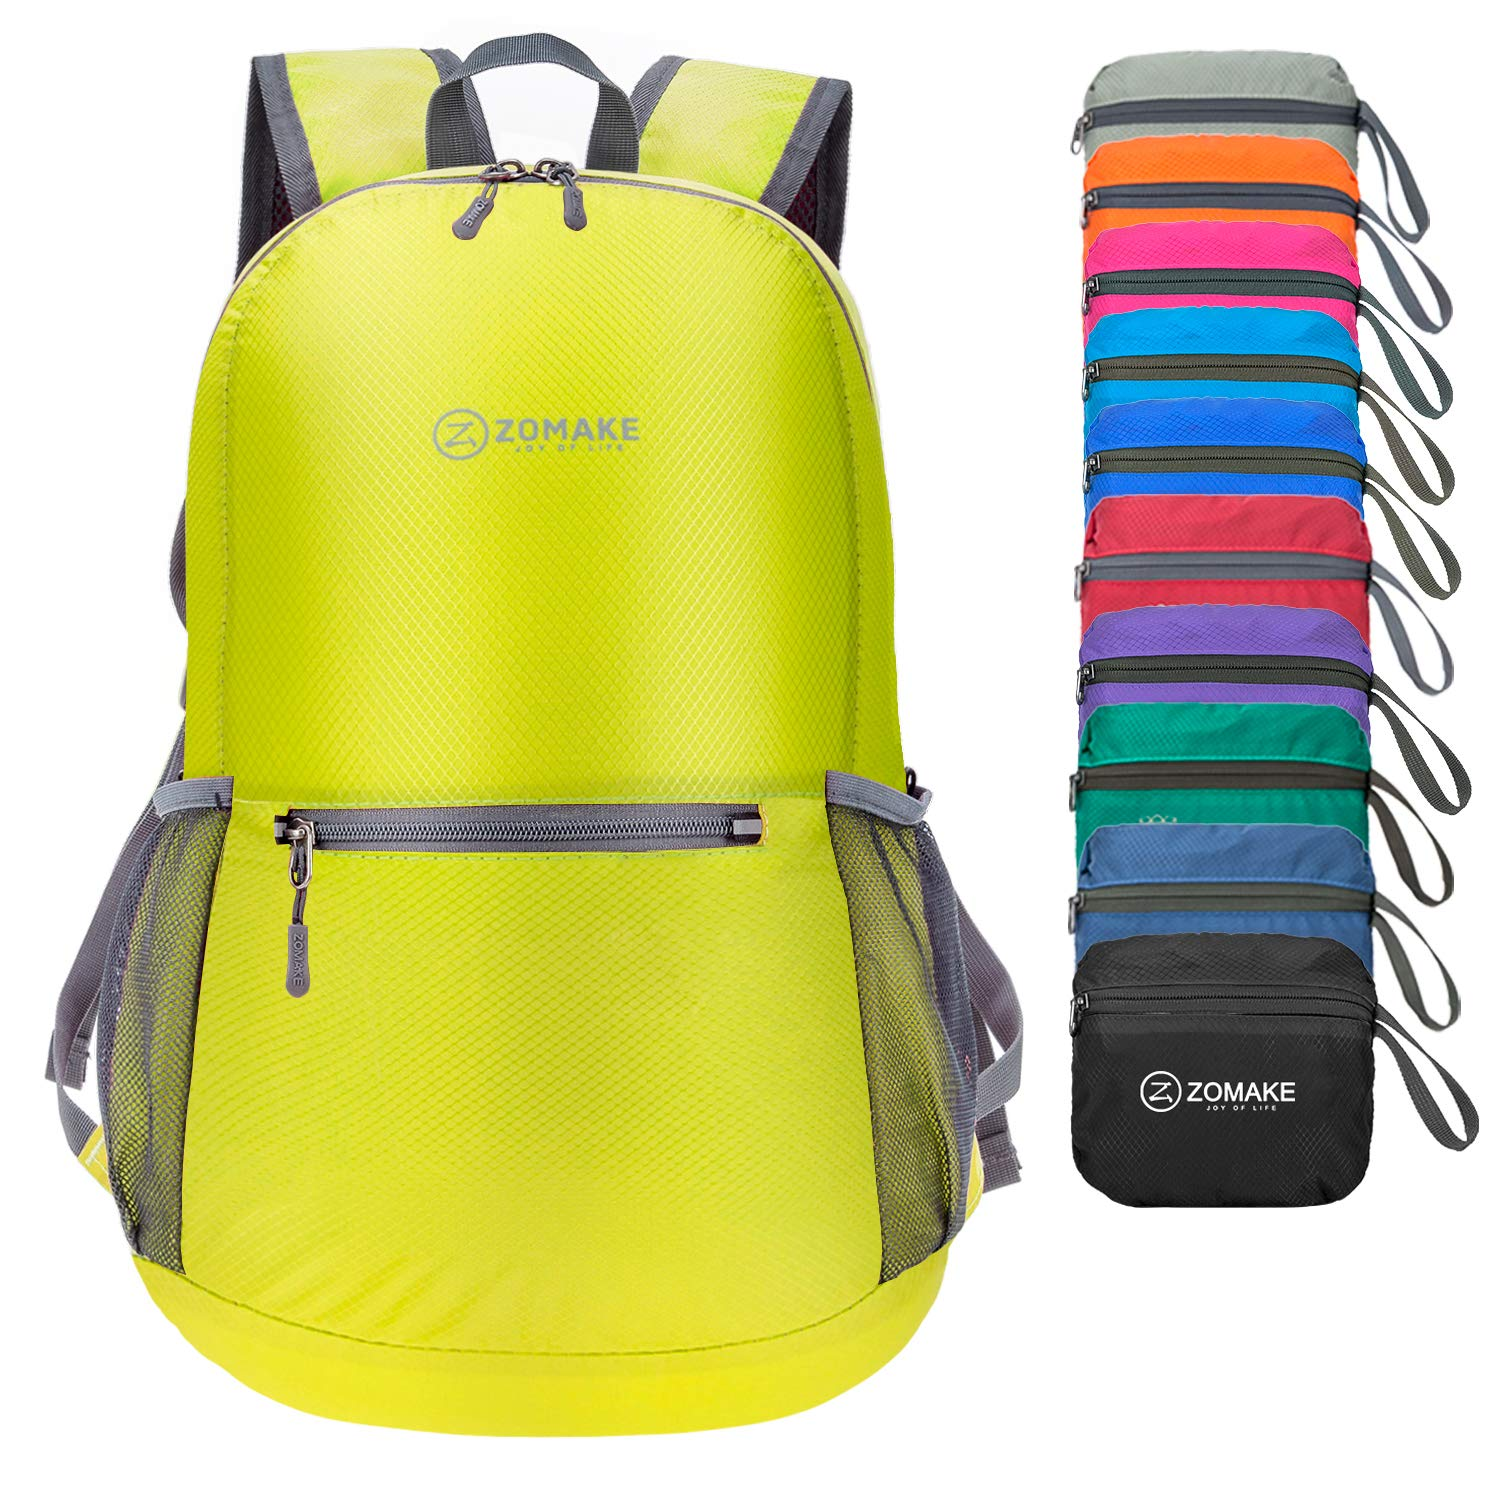 ZOMAKE Ultra Lightweight Foldable Backpack Water Resistant Hiking Daypack,  Unisex Small Rucksack for Travel   1b8a6f7dc2